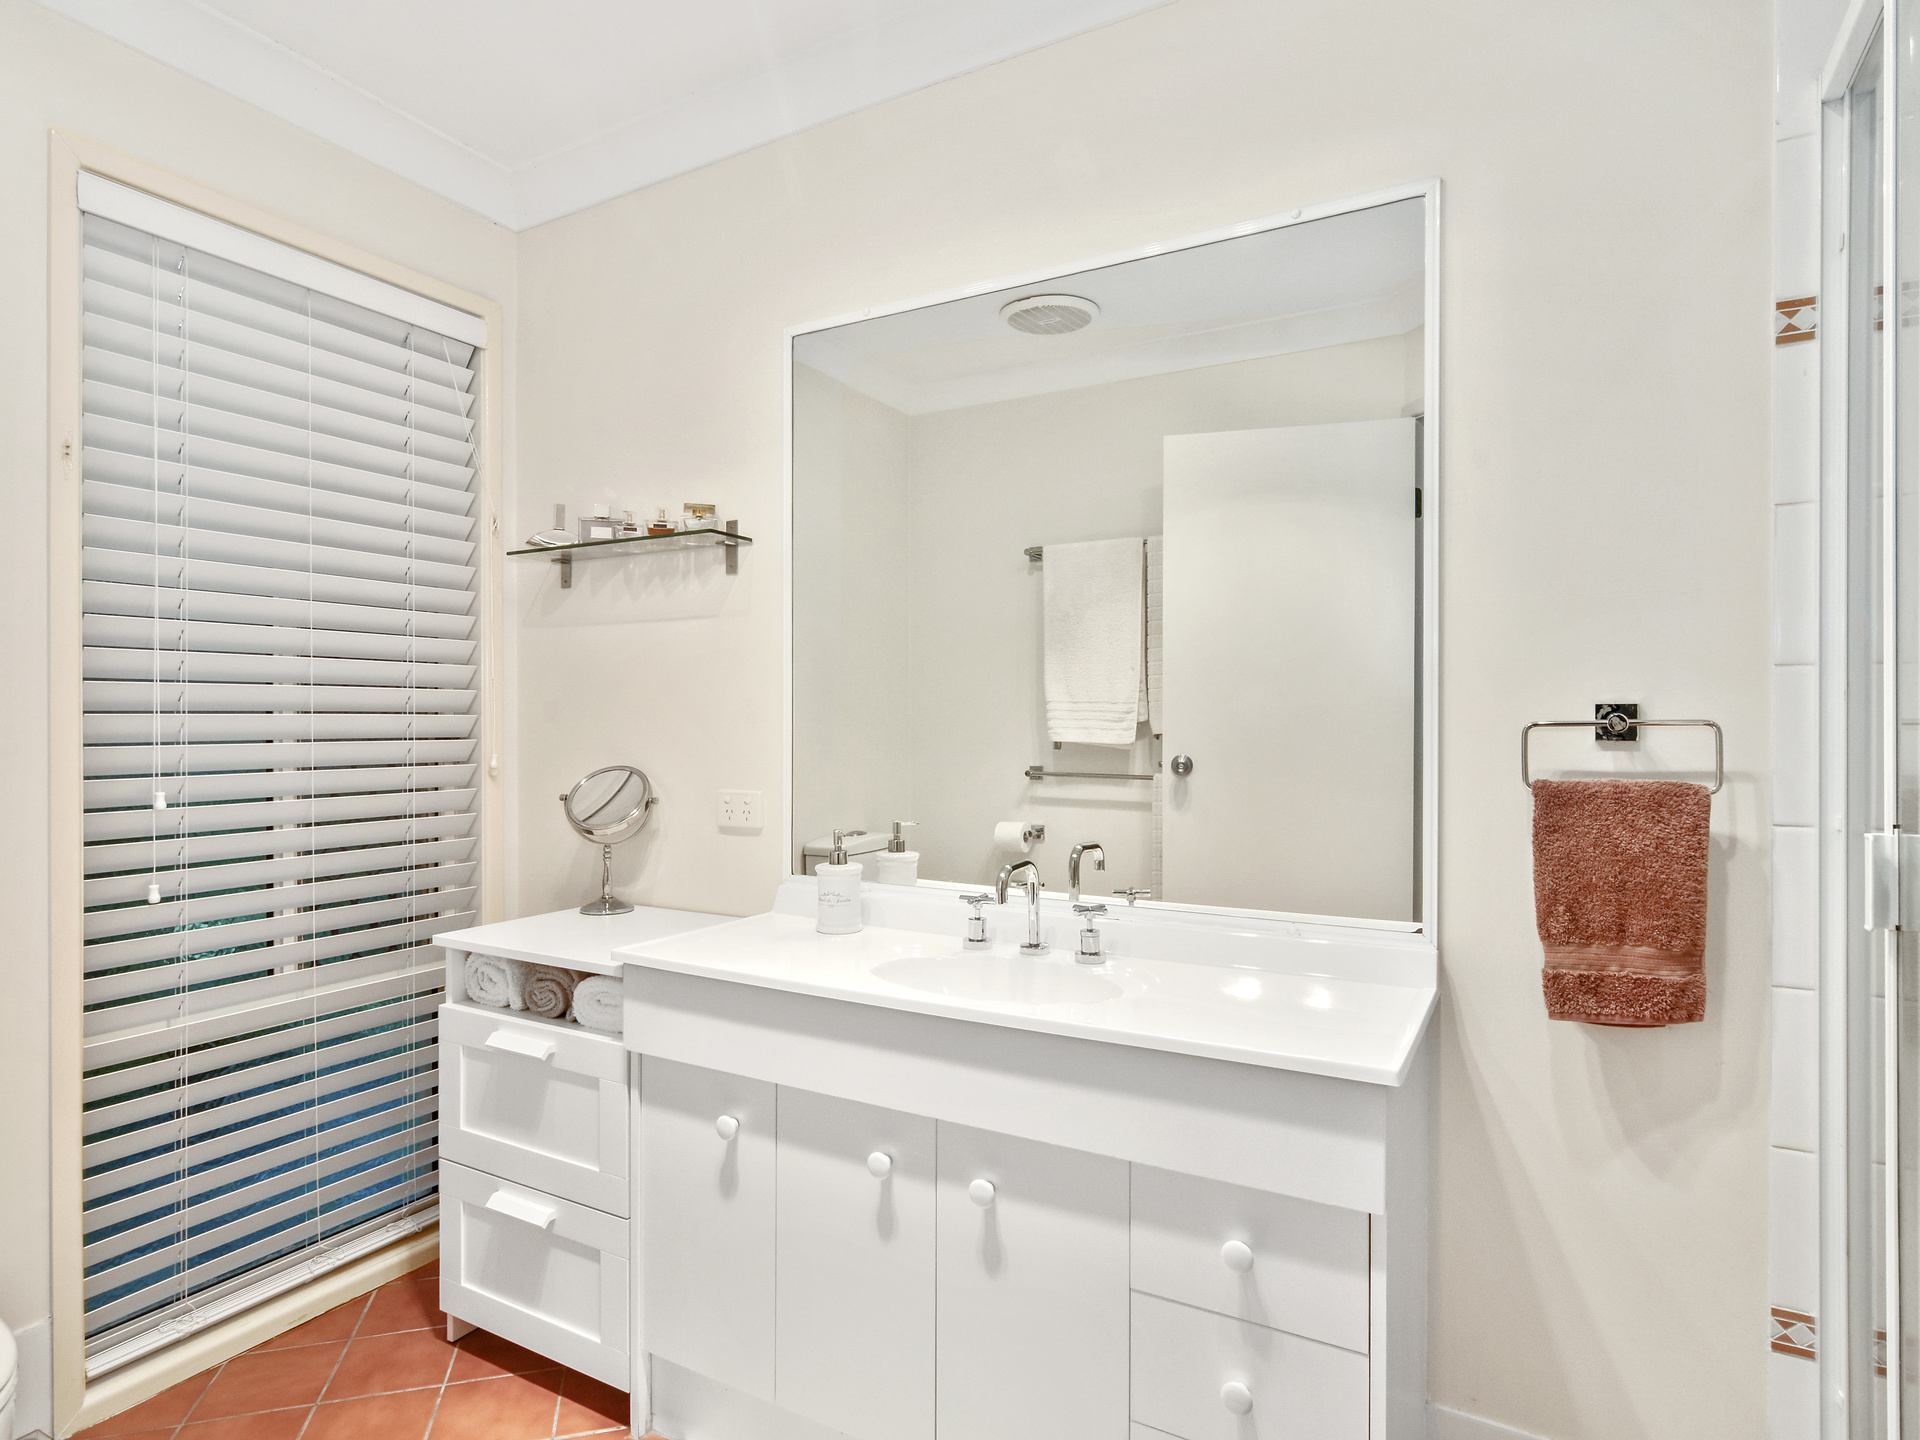 Real Estate   Gold Coast   Chevron Realty   010 Open2view Id518268 3 Action Place Upper Coomera